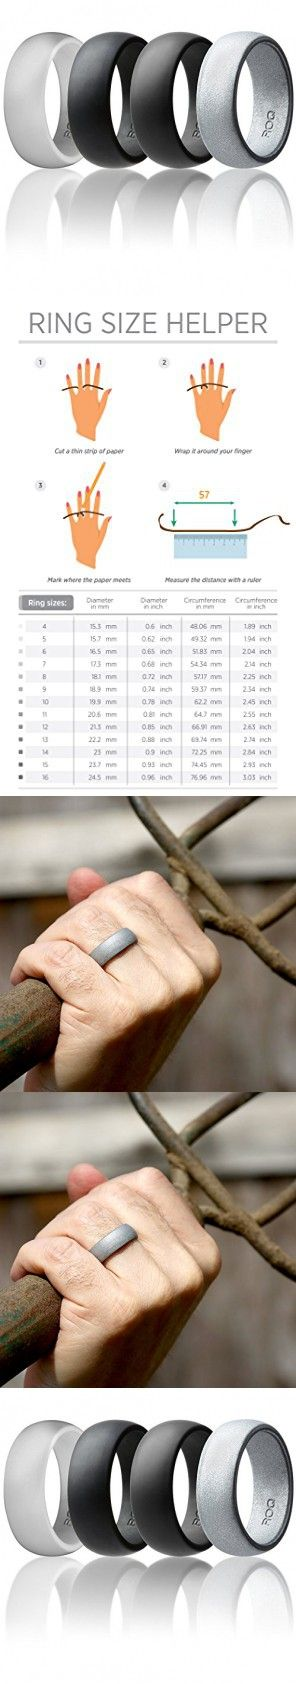 Silicone Wedding Ring For Men By ROQ Affordable Silicone Rubber Band, 4 Pack - Light Gray, Metal Look Silver, Black, Grey - Size 14